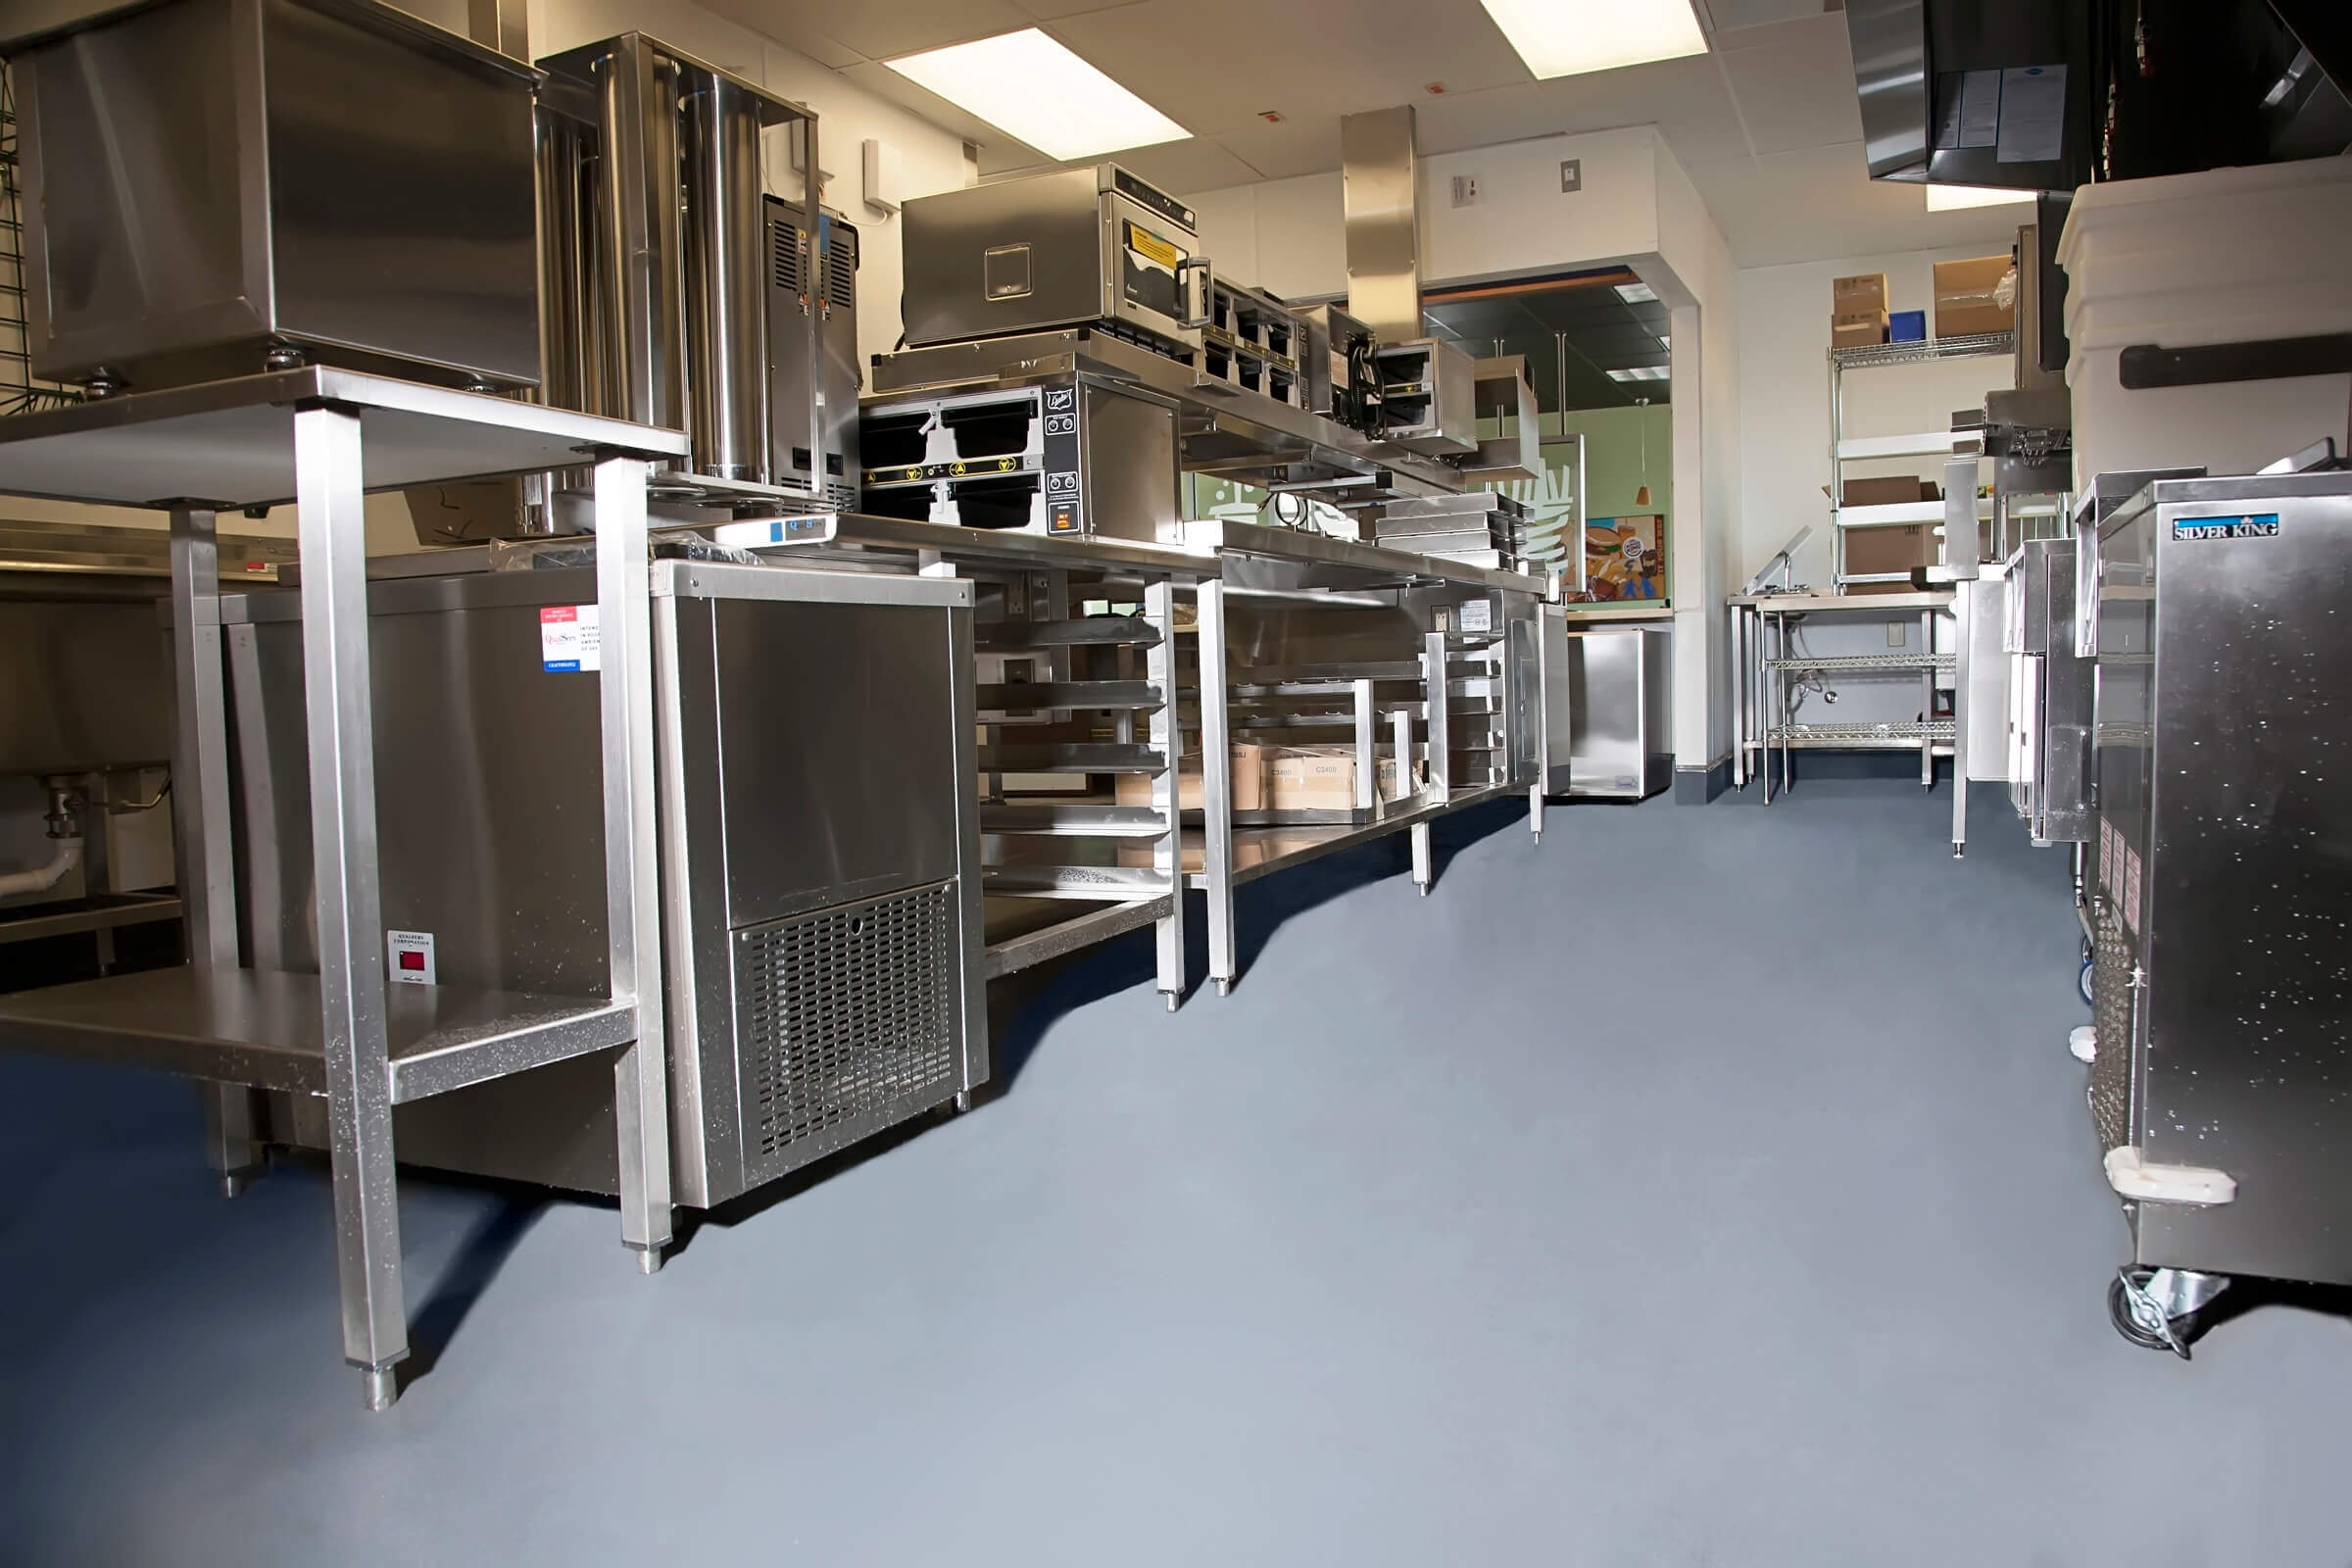 Restaurant Kitchen Photos commercial kitchen flooring epoxy & stained concrete| industrial